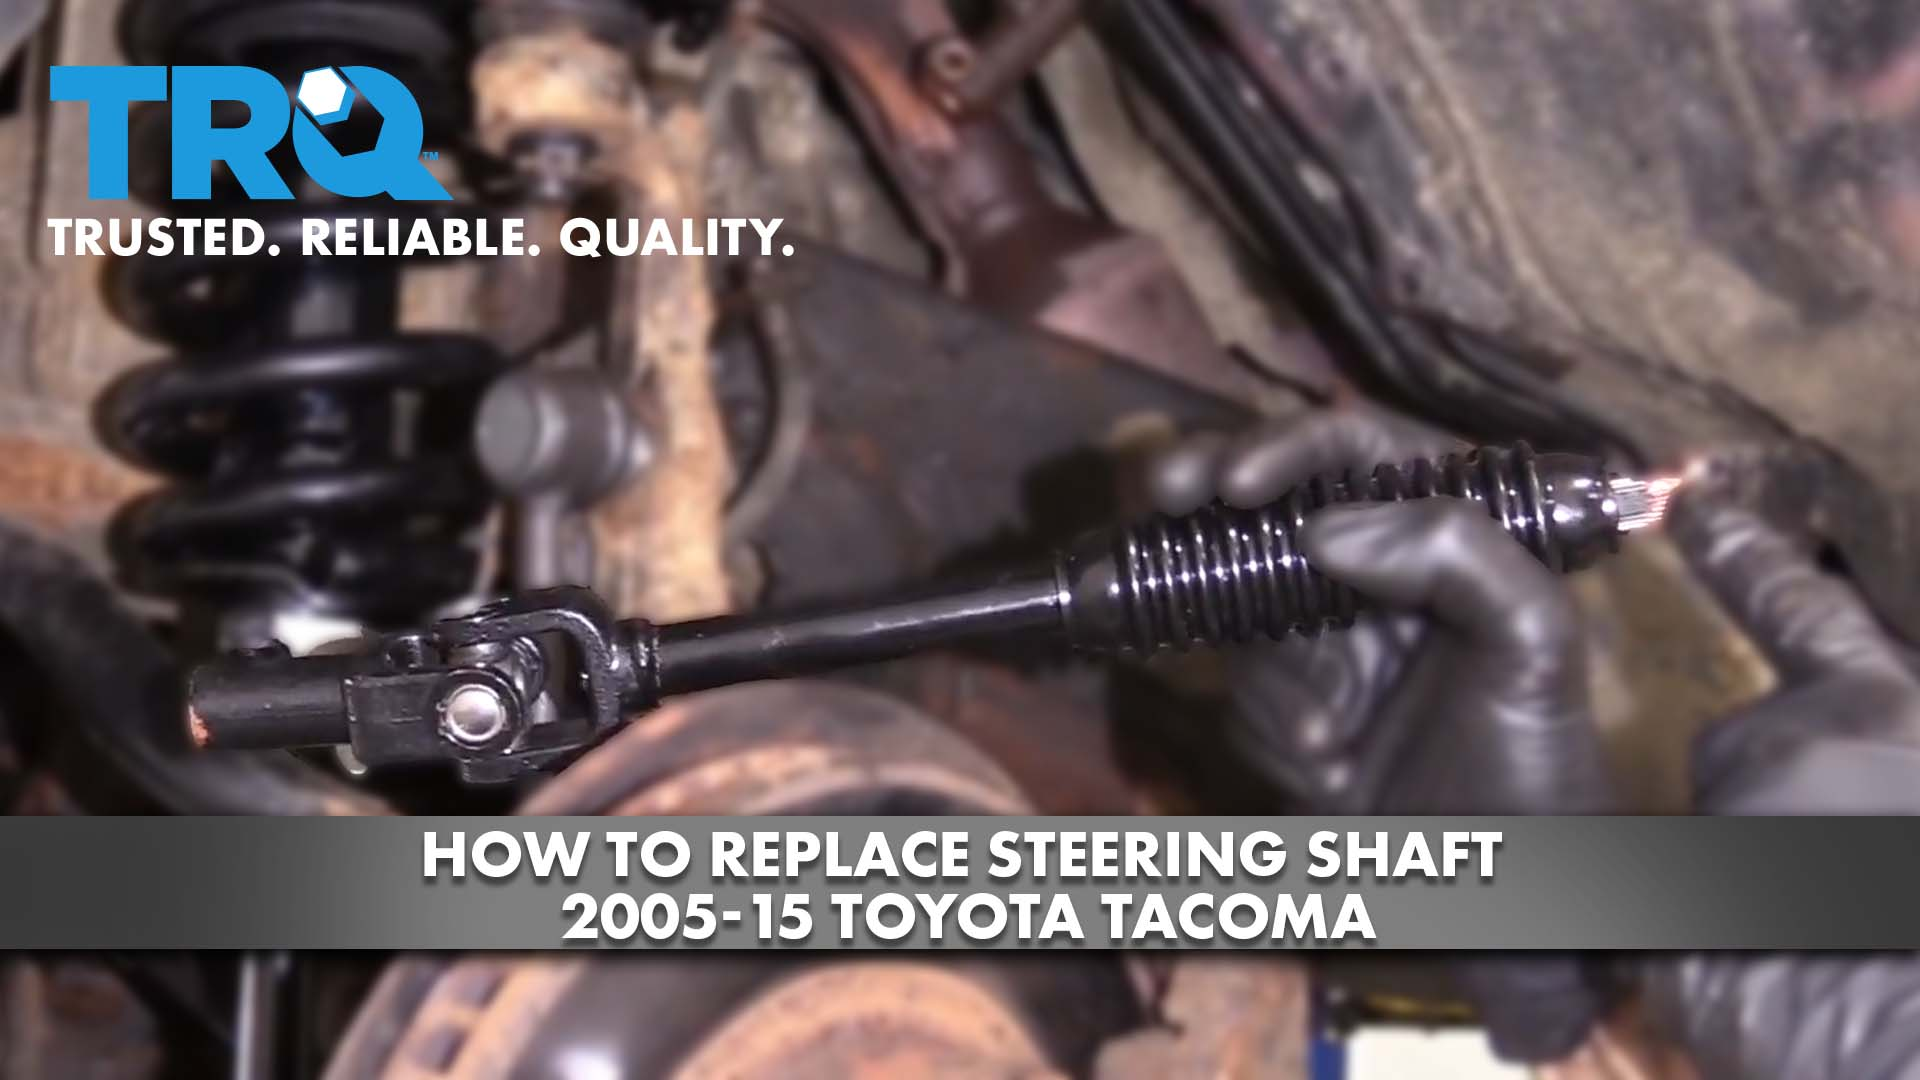 How to Replace Steering Shaft 05-15 Toyota Tacoma